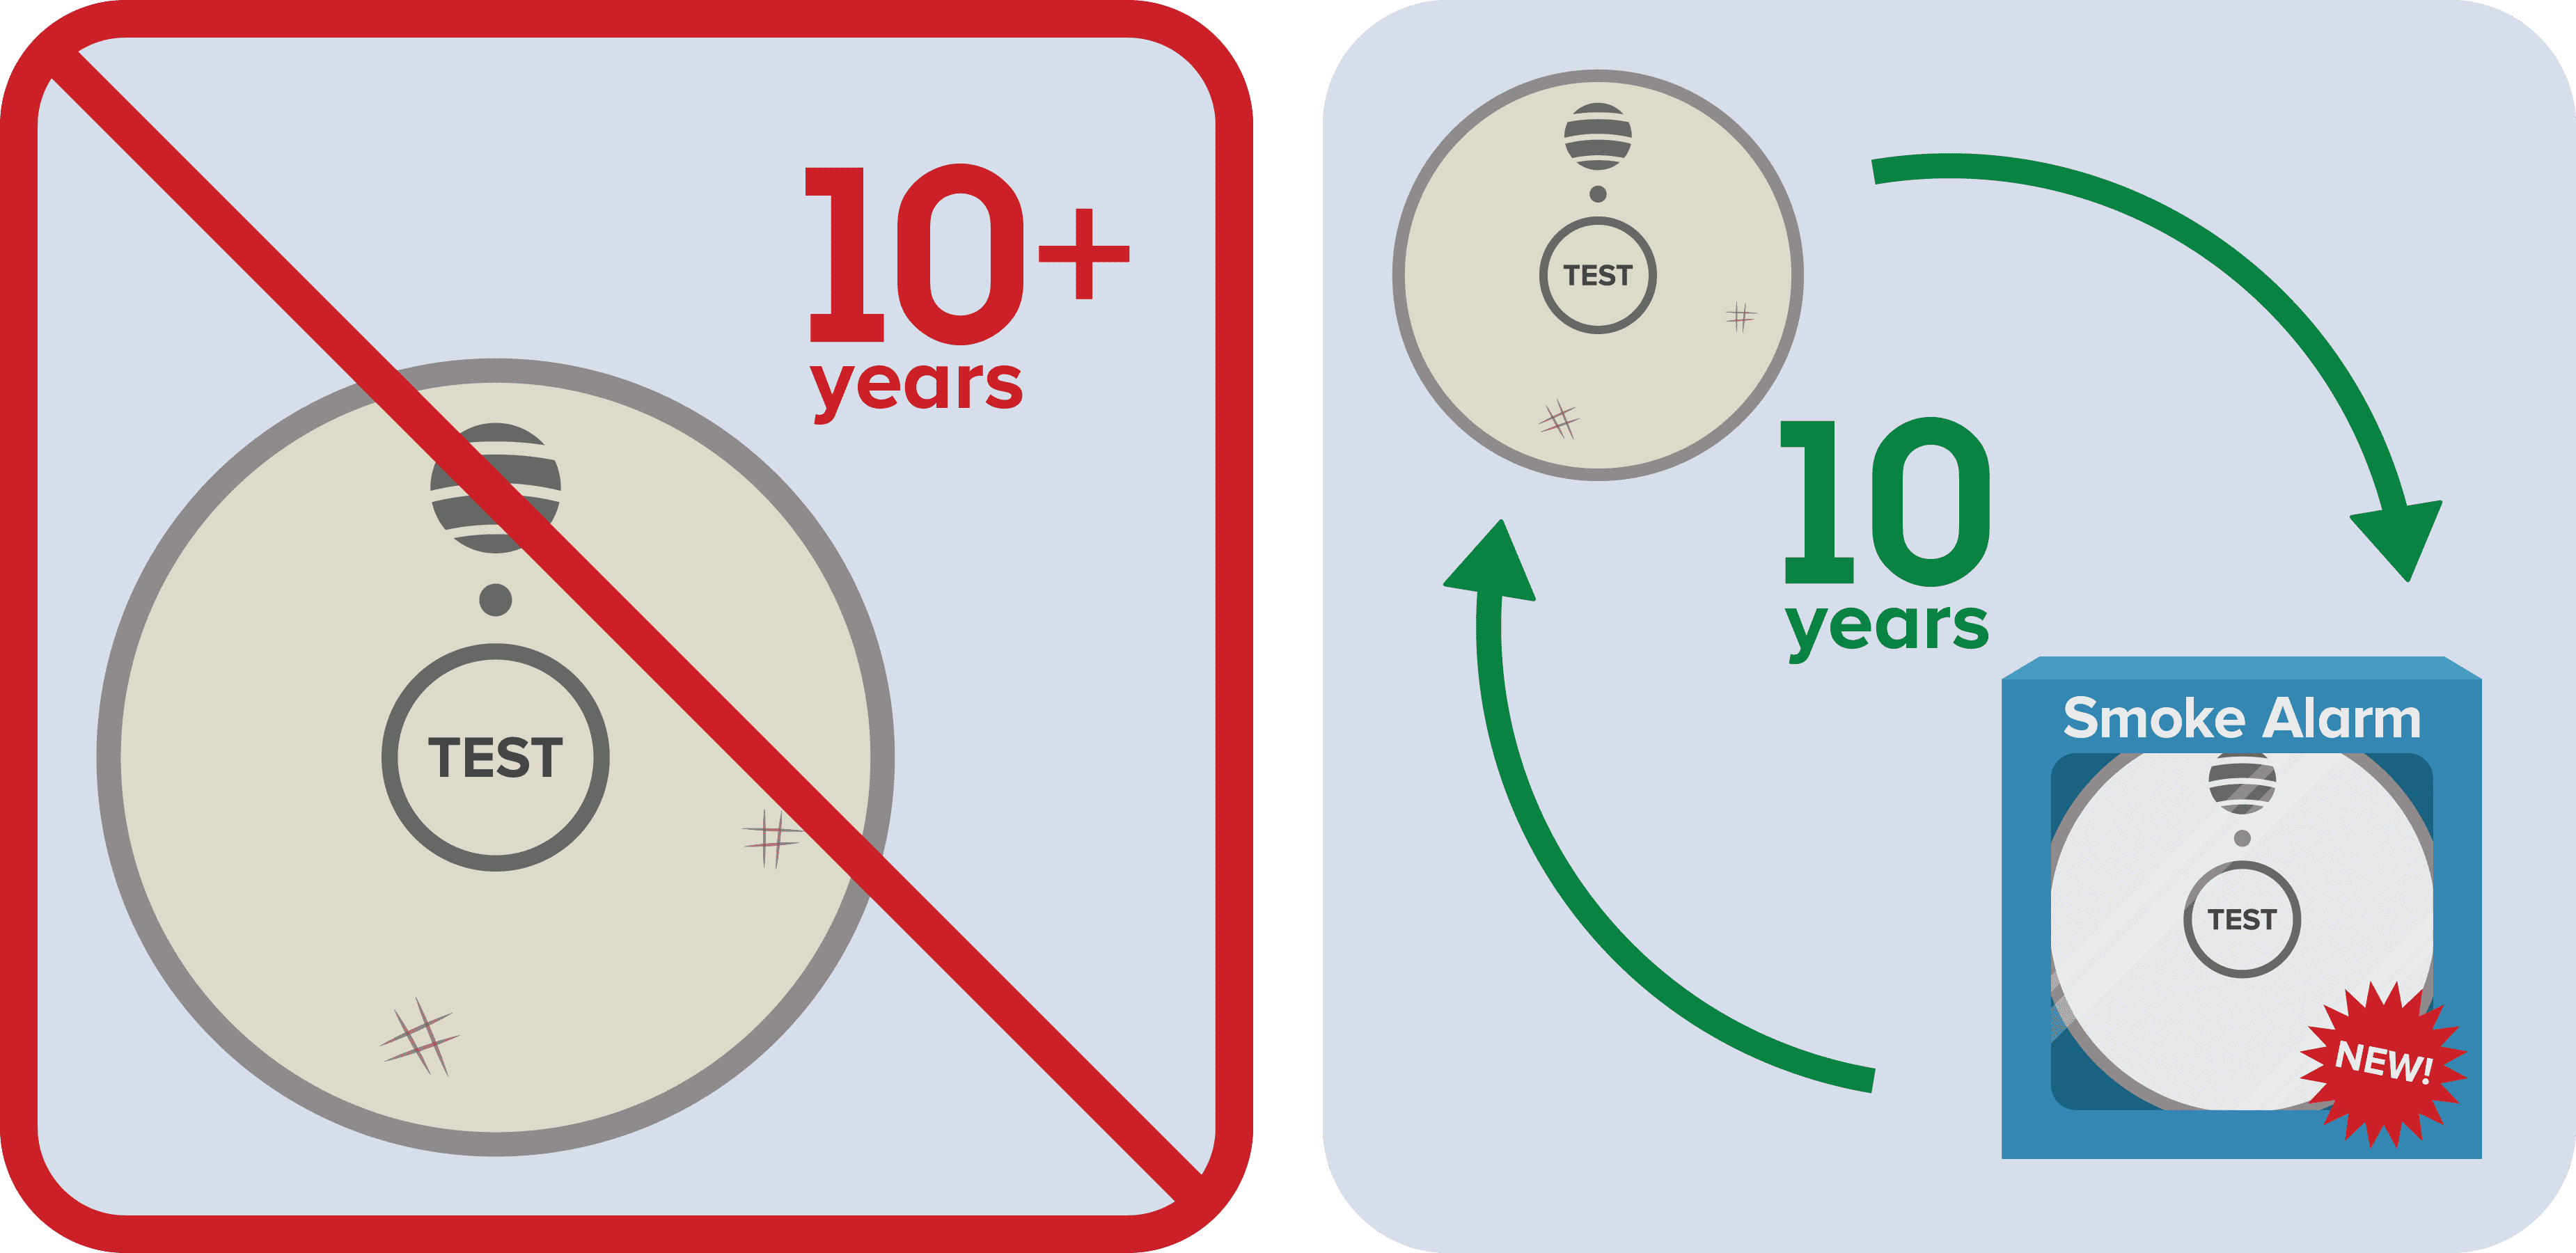 Pictograph: Replace smoke alarms when they are 10 years old